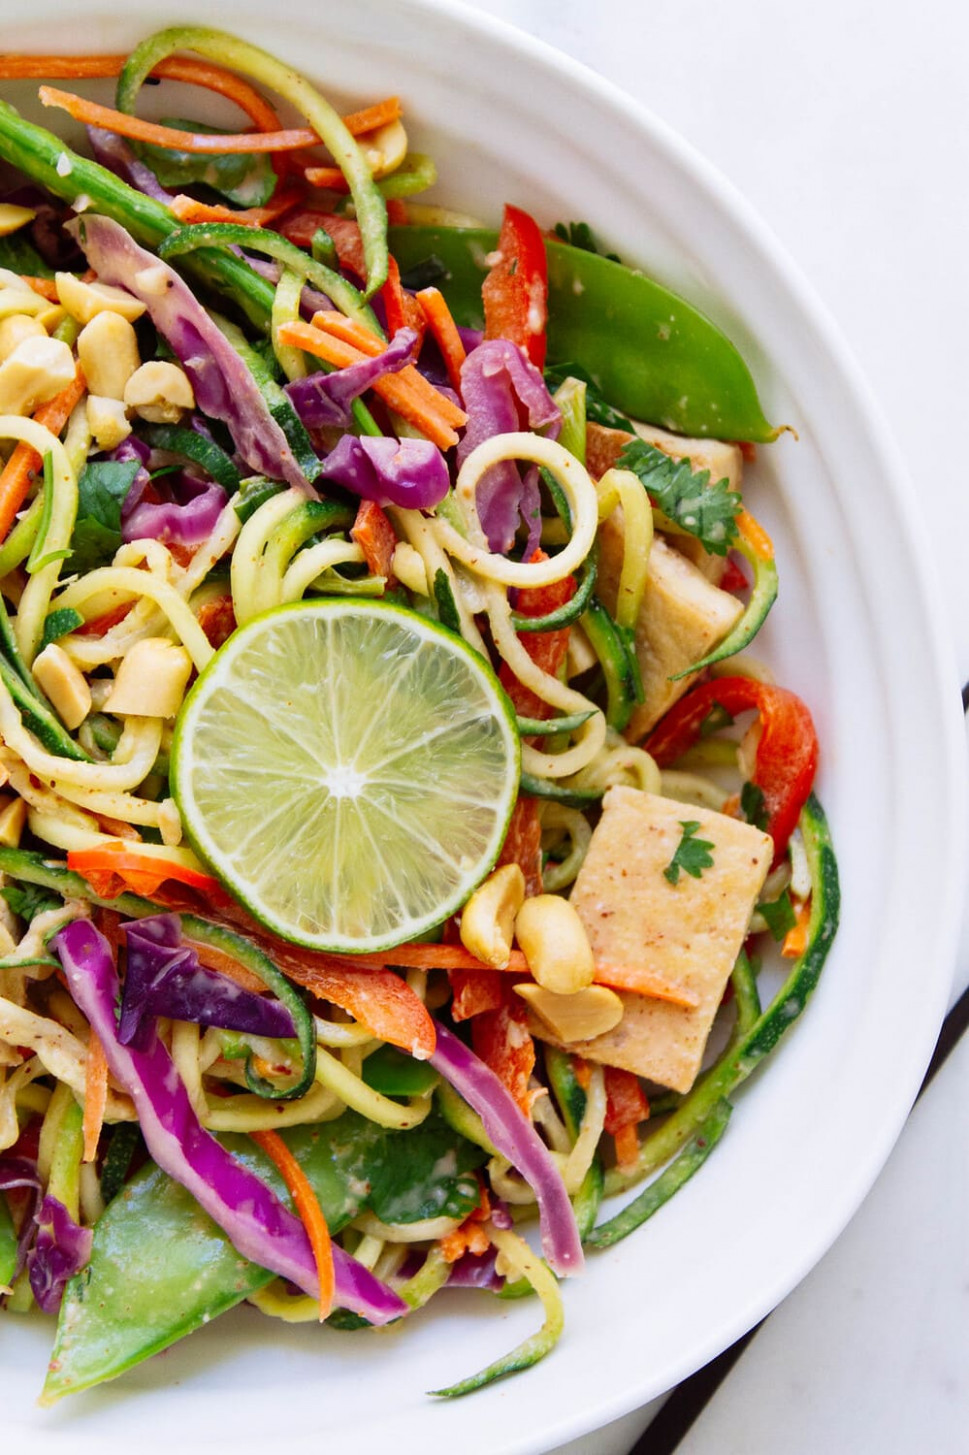 RAINBOW ASIAN ZUCCHINI NOODLE BOWL + CRISPY TOFU - dinner recipes with zucchini noodles